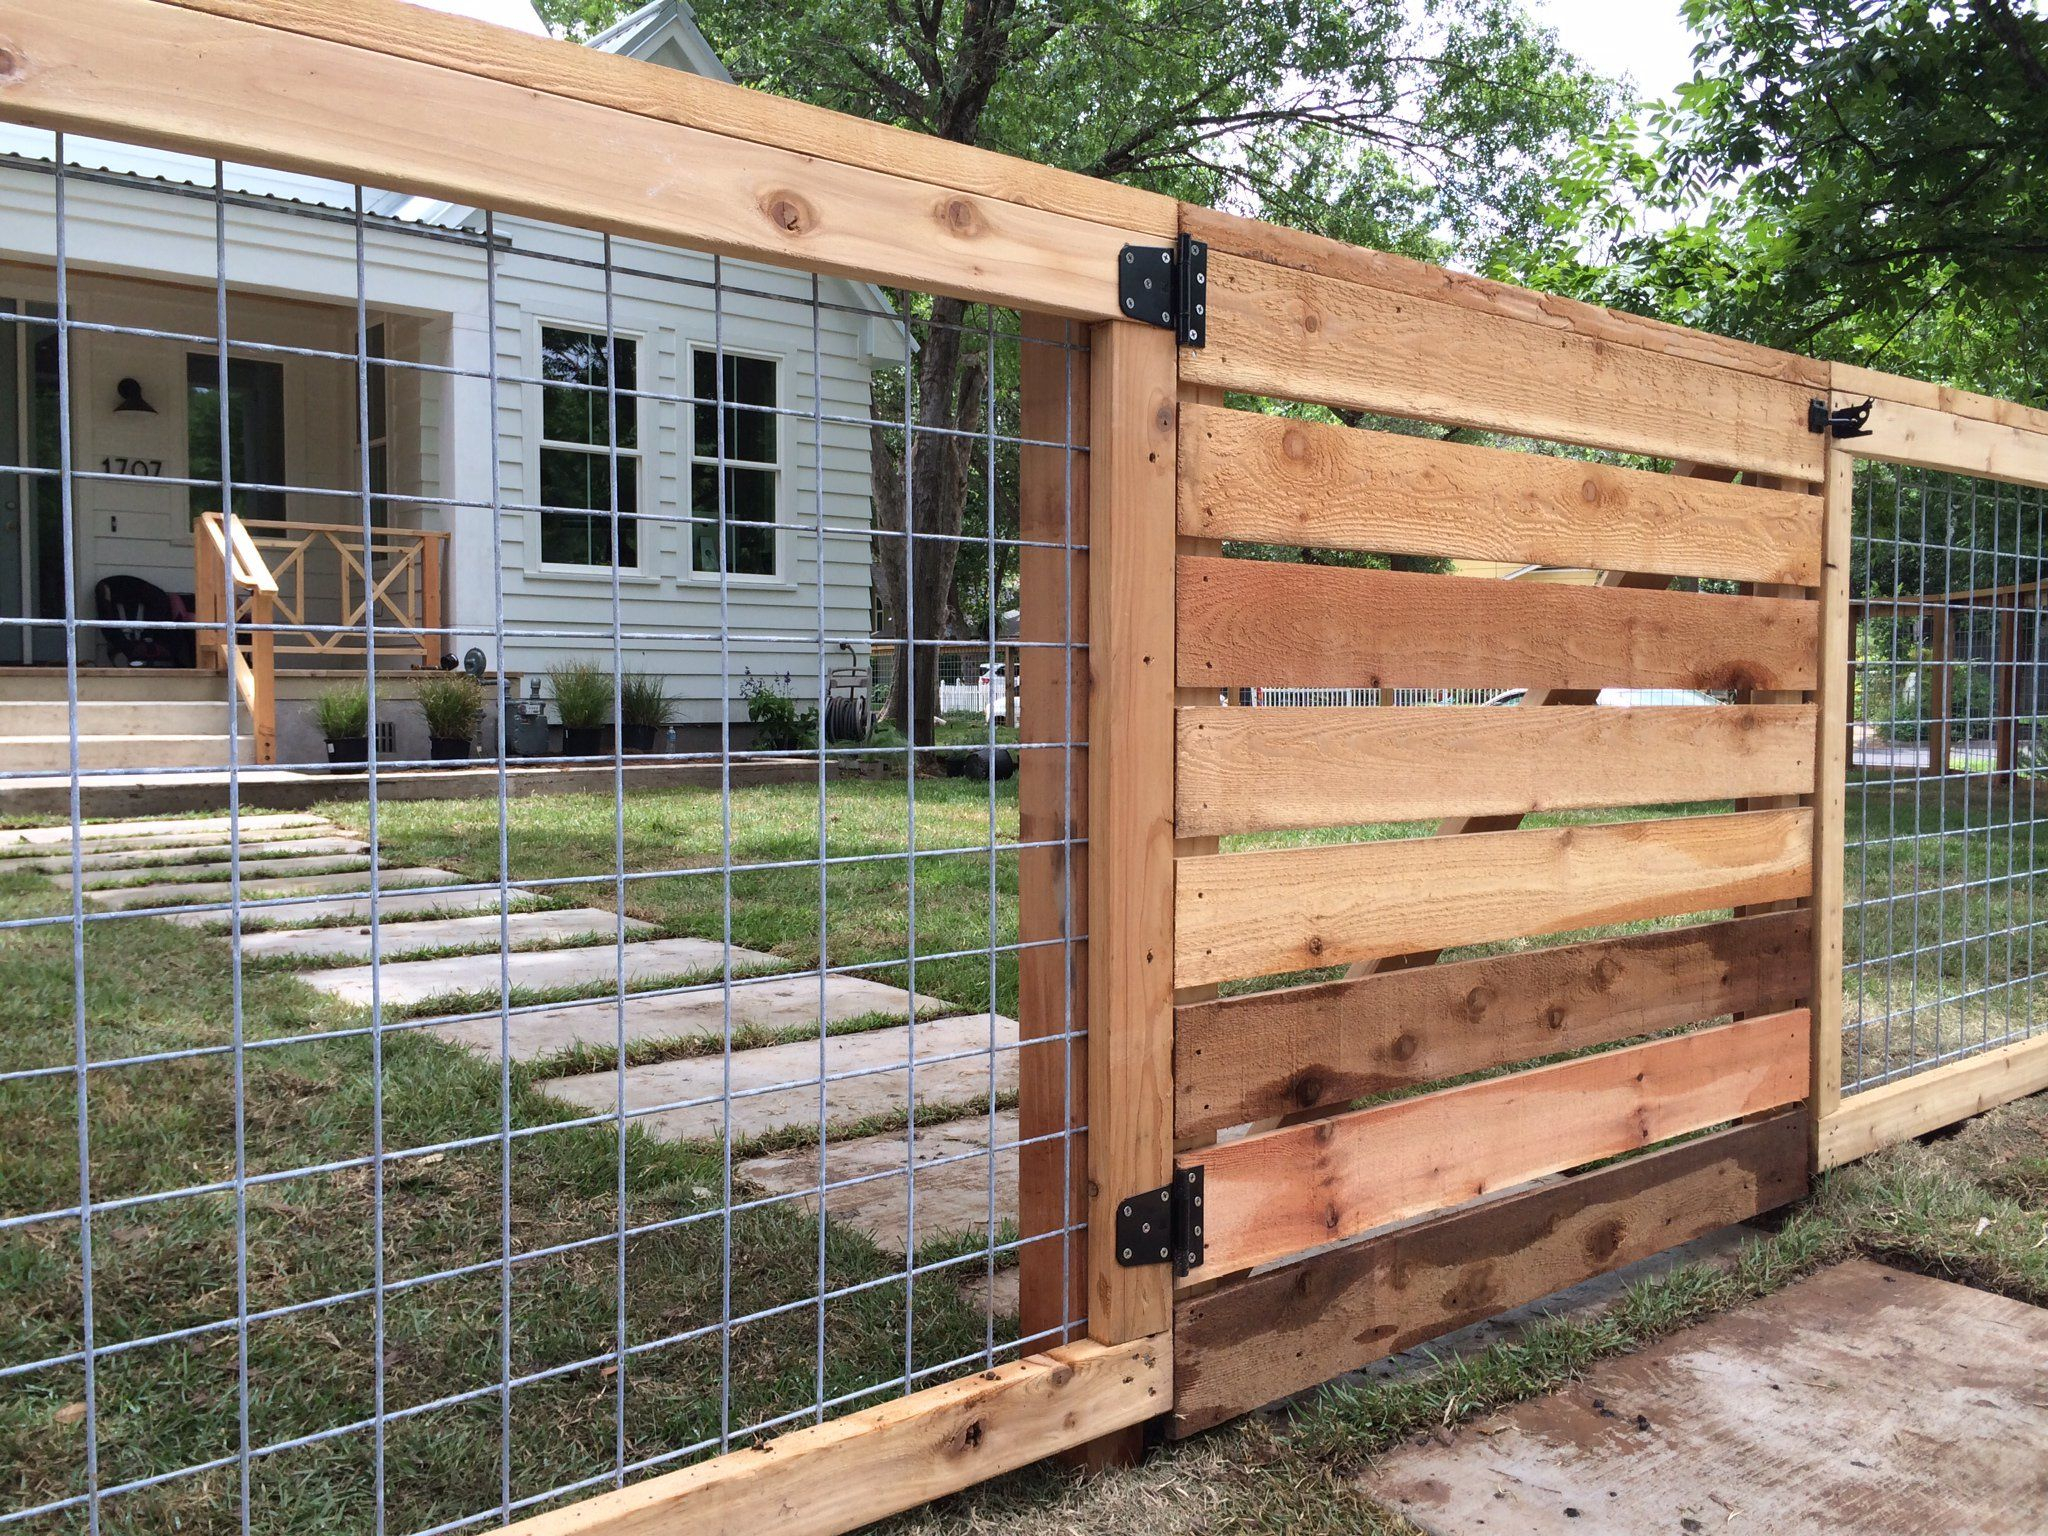 17 Awesome Hog Wire Fence Design Ideas For Your Backyard Coffee in 16 Smart Concepts of How to Improve Backyard Fence Cost